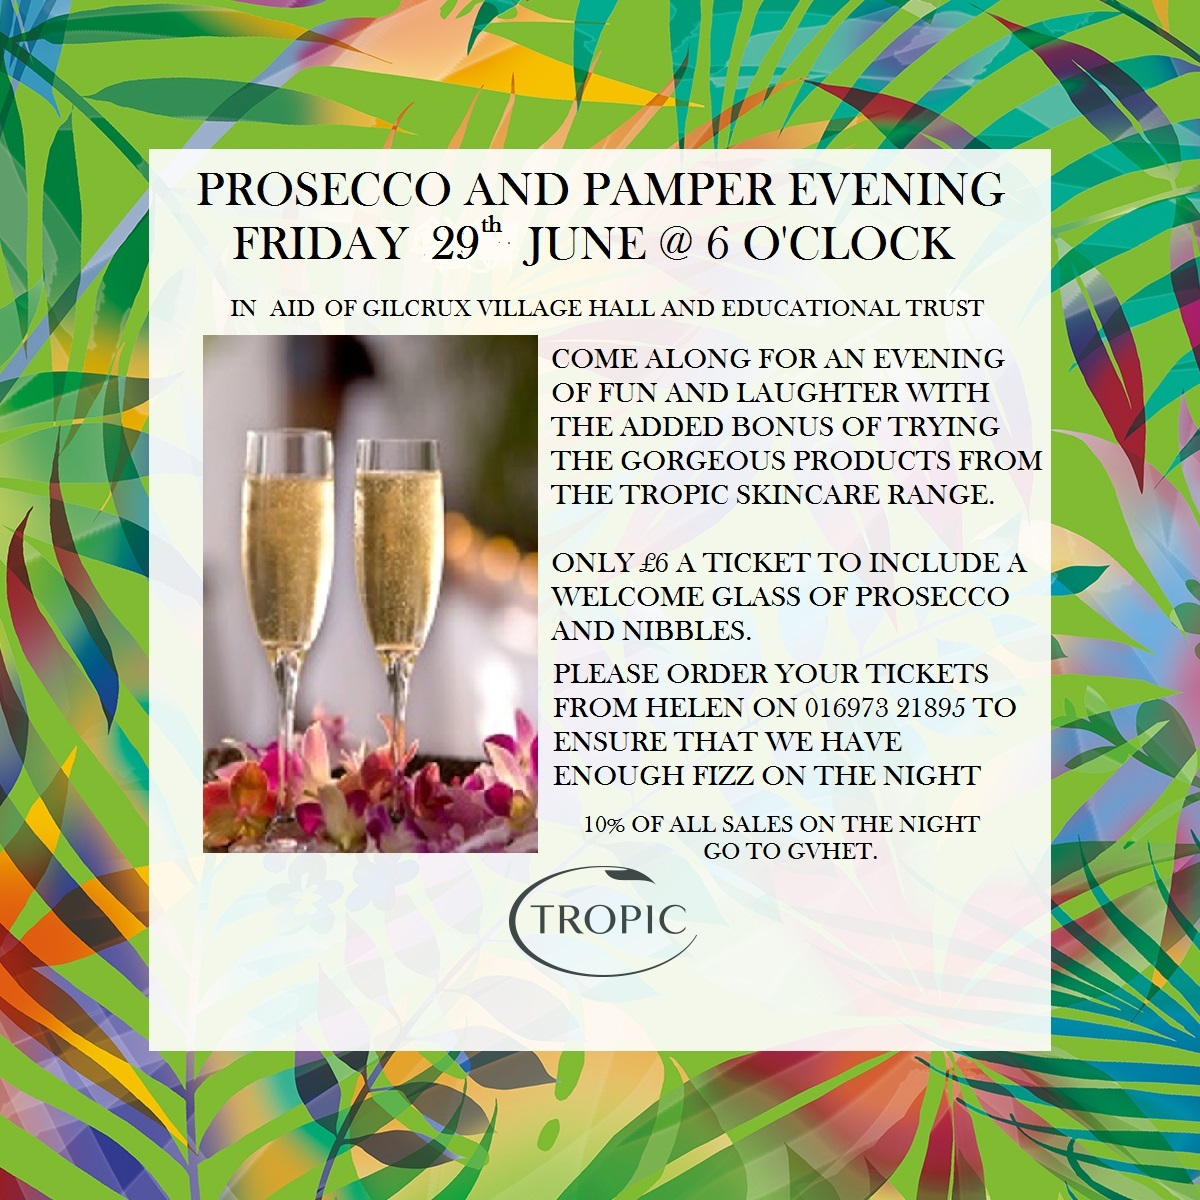 Prosecco & Pamper evening tropic 29 June 2018